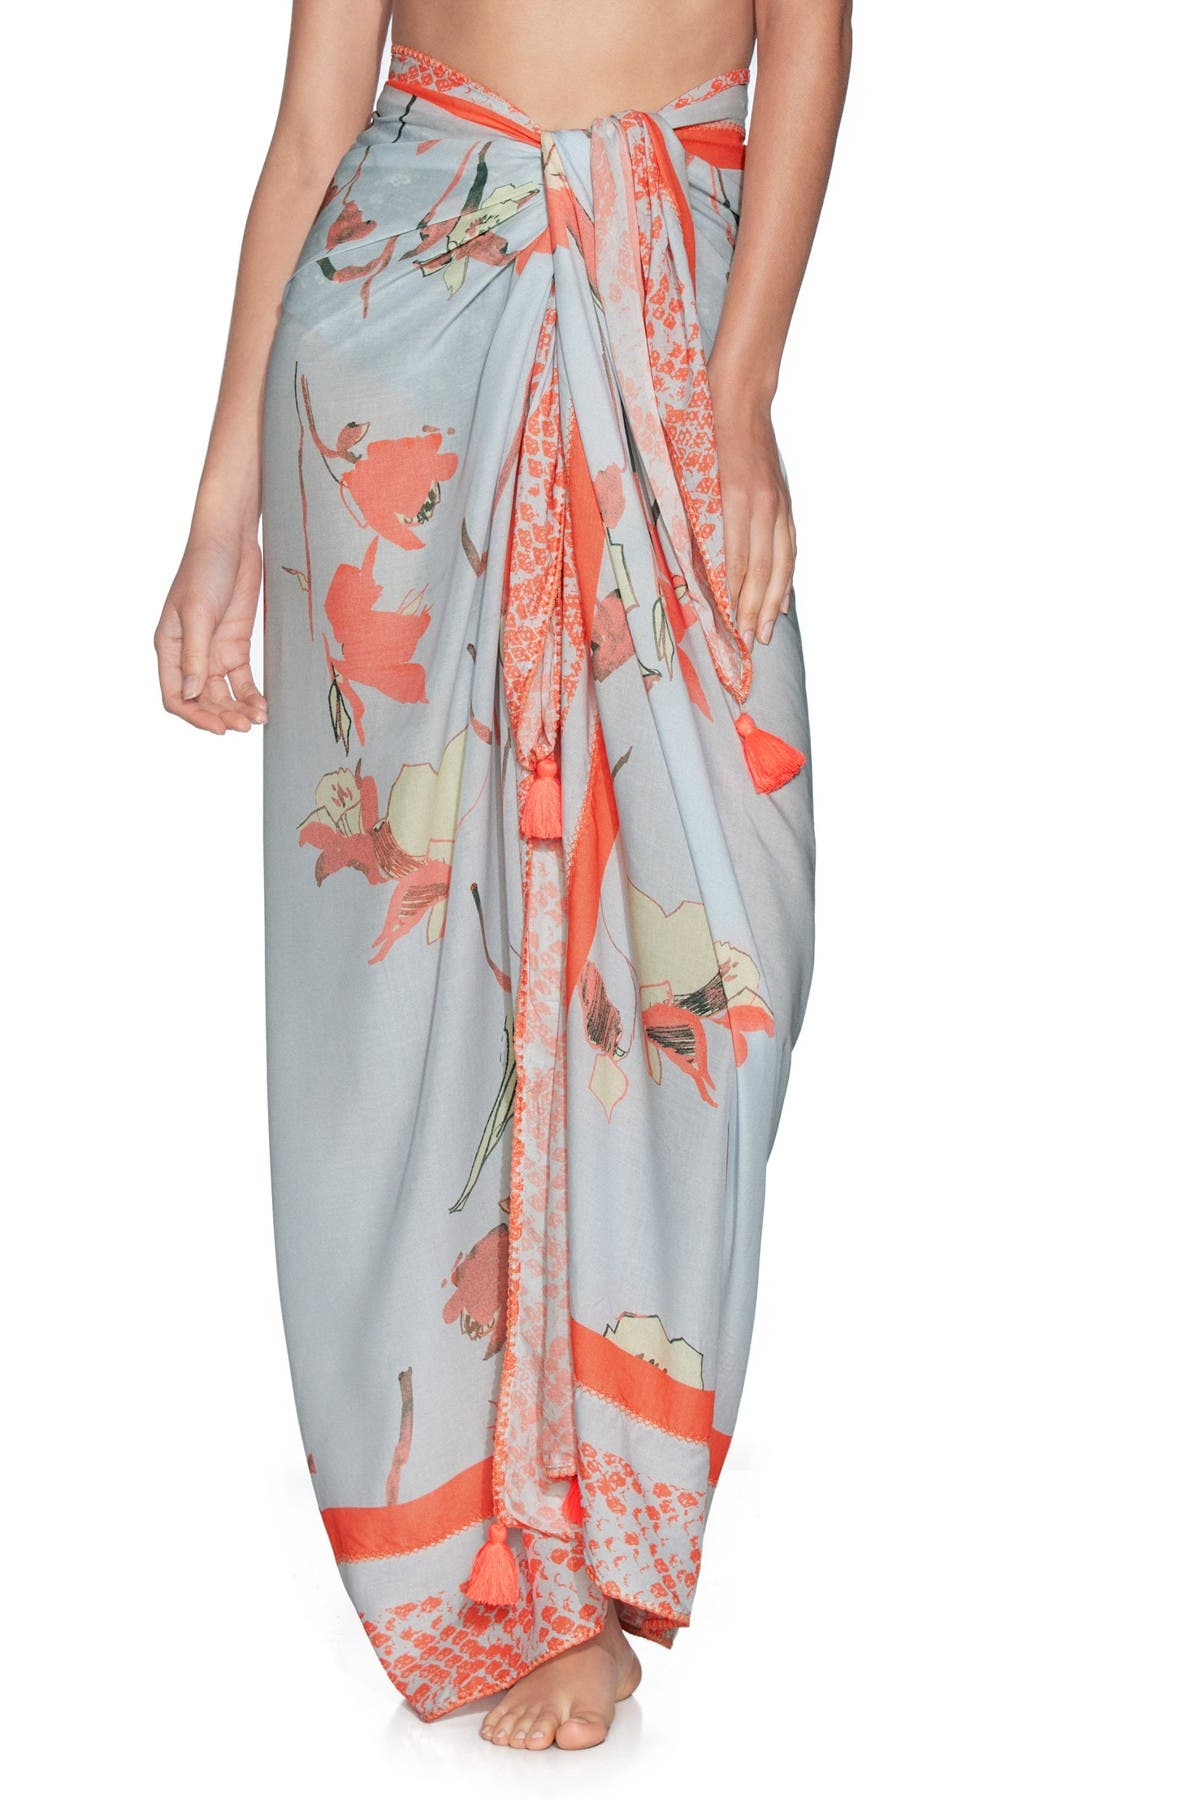 Image of Maaji Butterfly Bush Sarong Maxi Skirt